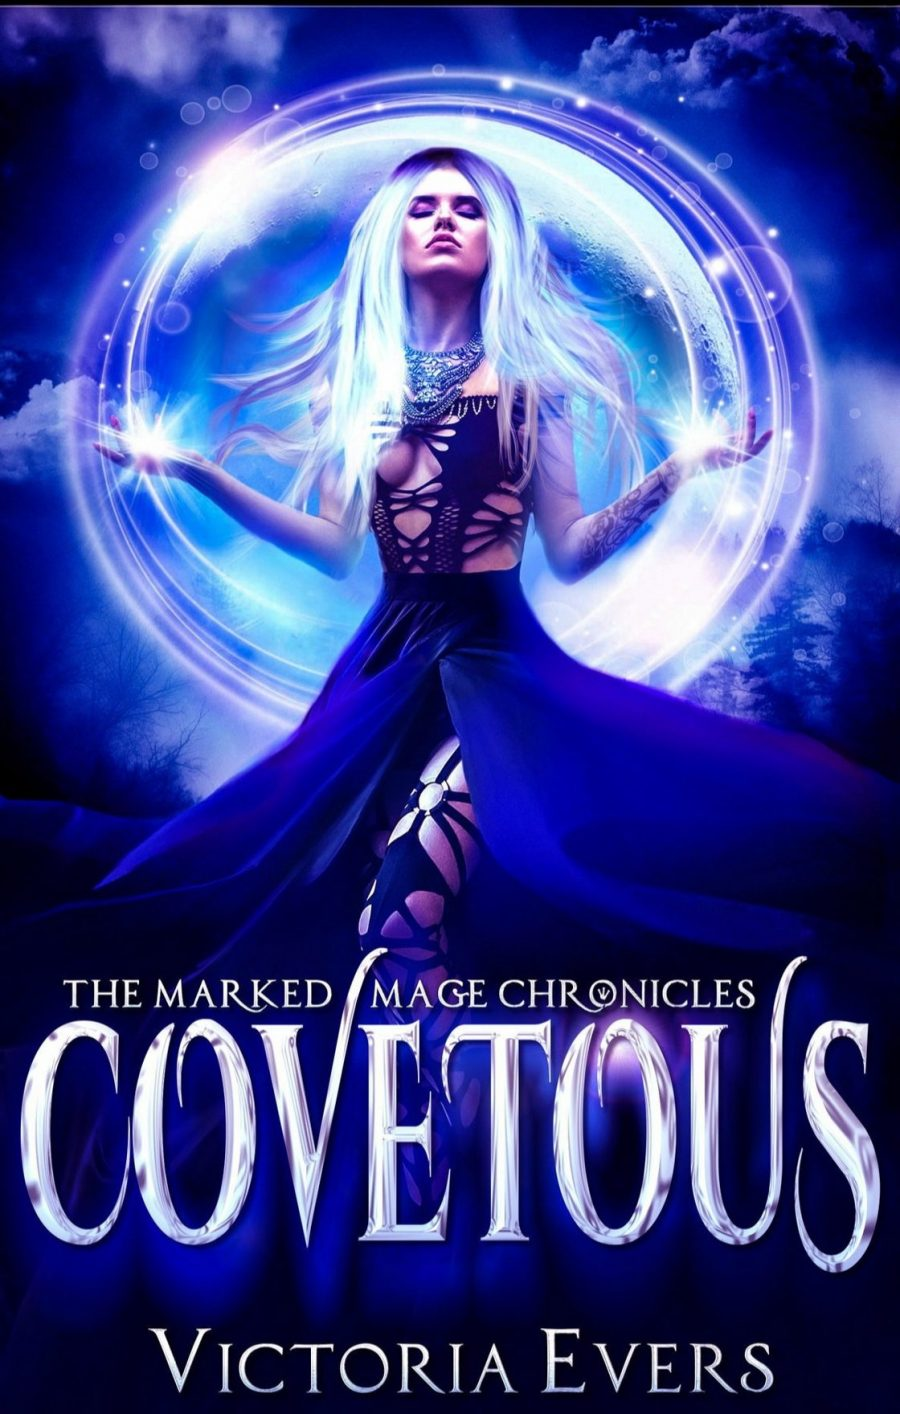 Covetous by Victoria Evers - A Book Review #BookReview #YA #UrbanFantasy #UF #MustRead #Amazing #Angels #Demons #Mages #5Star #BooksAndBlurbs